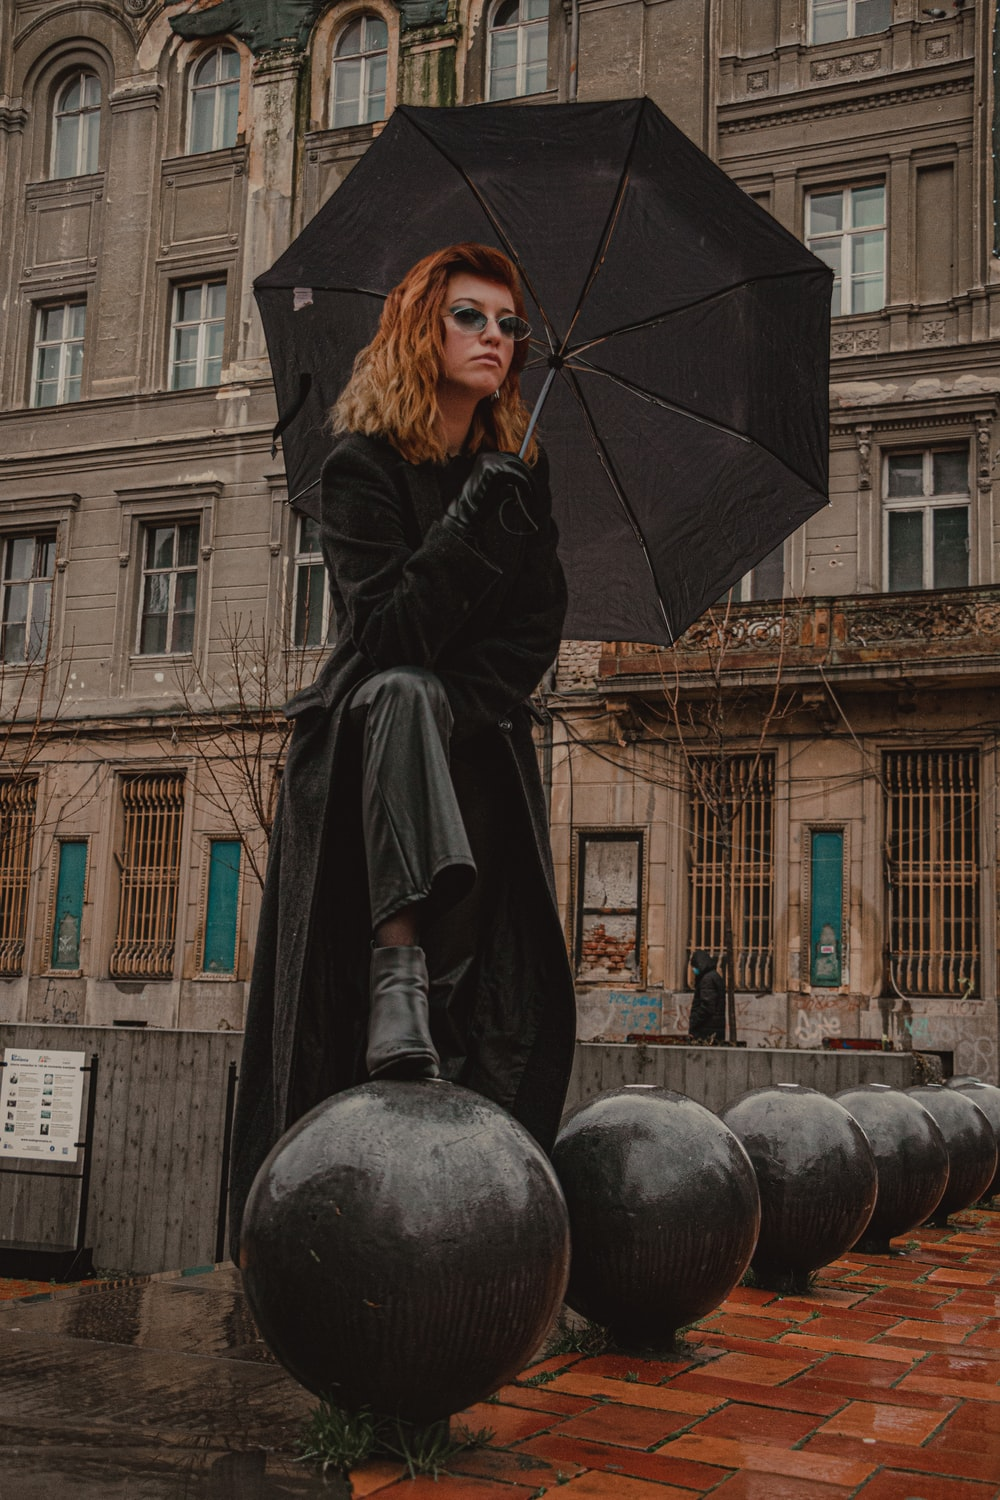 woman in black coat holding umbrella standing near brown concrete building during daytime